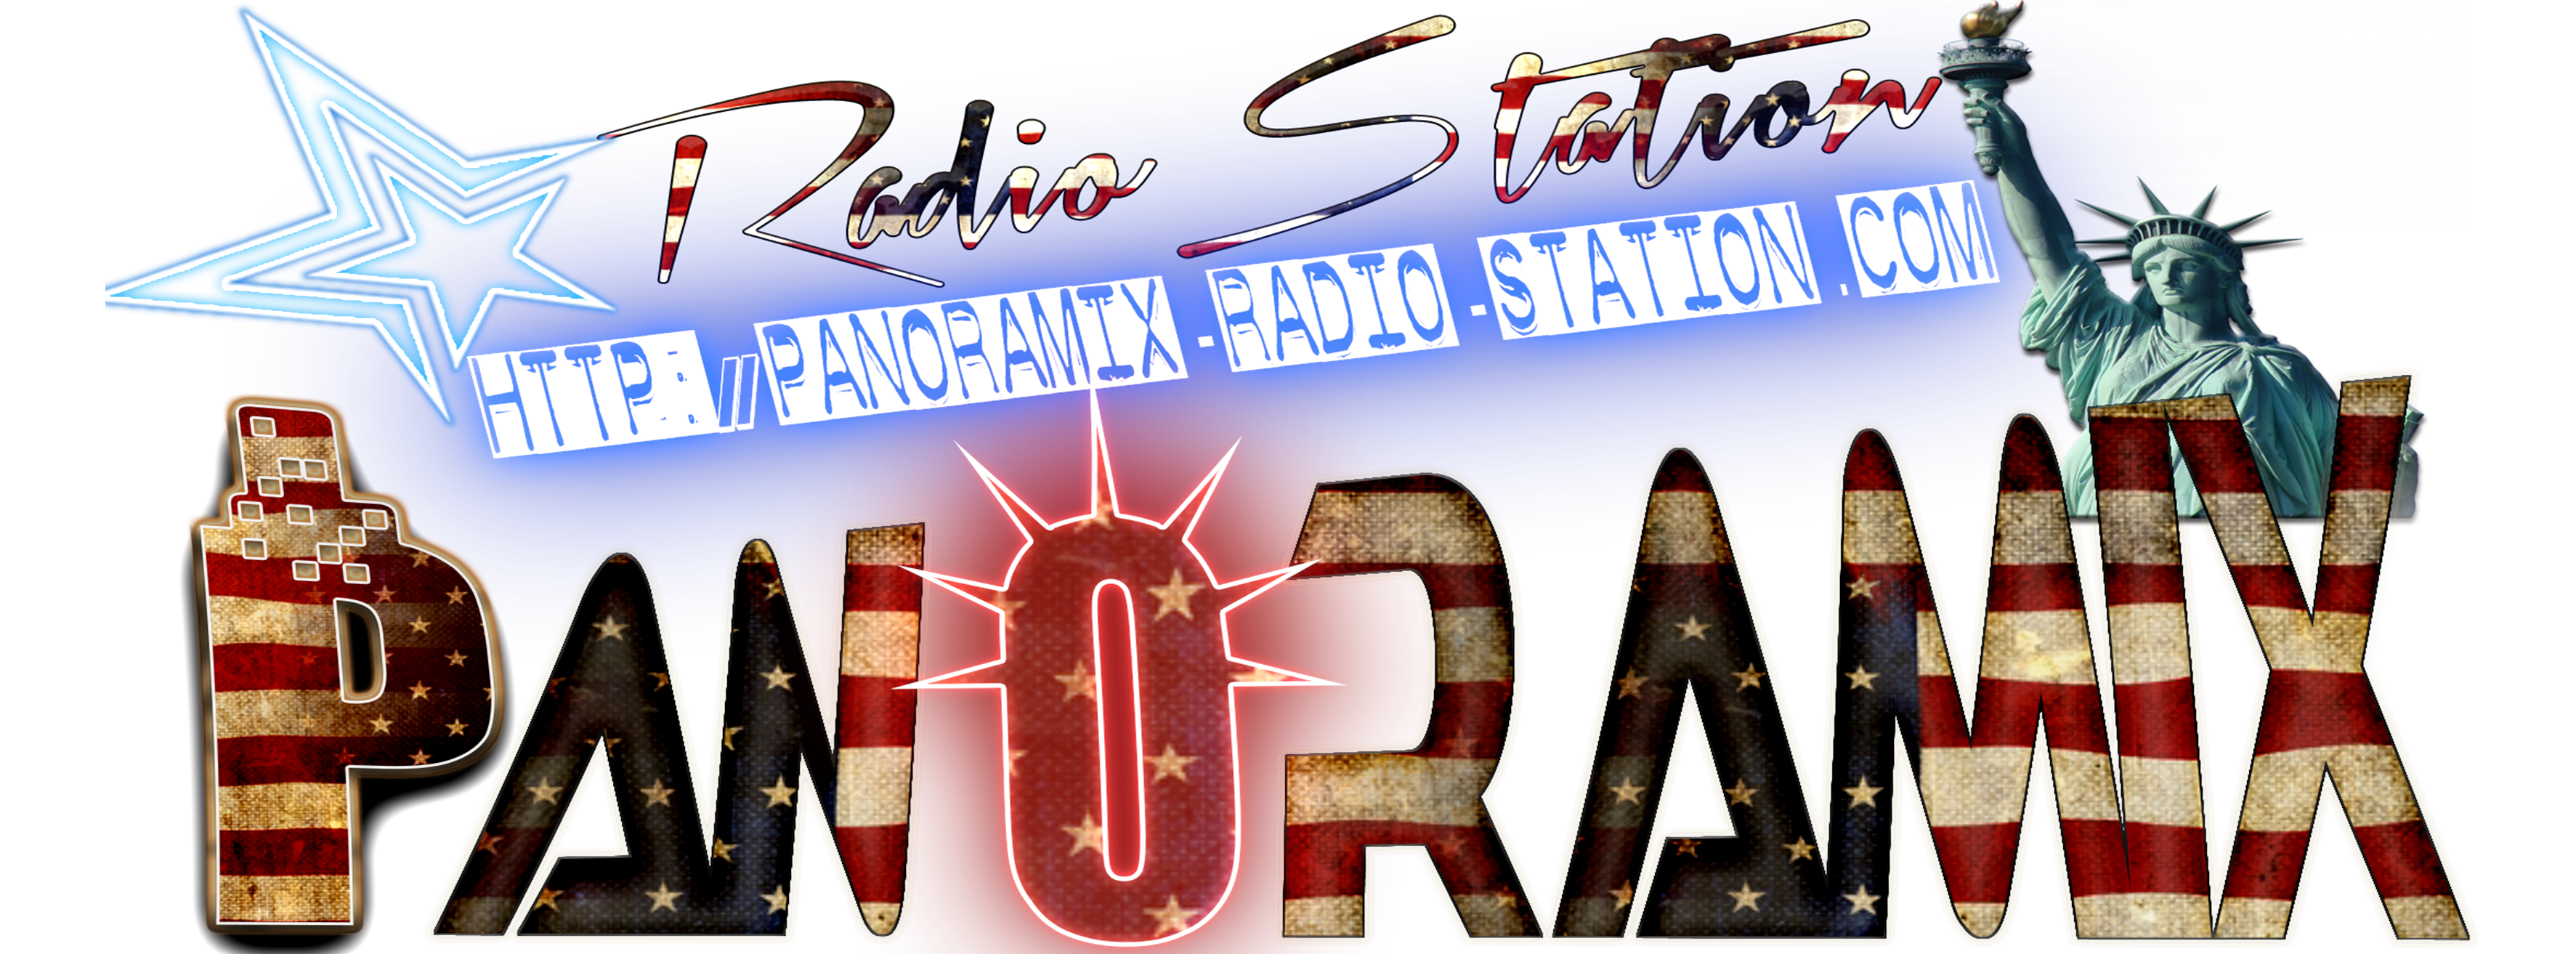 http://panoramix-radio-station.com/wp-content/uploads/2018/04/LOGO-OFFICIEL-2017-PANORAMIX-ETOILE-ble.png